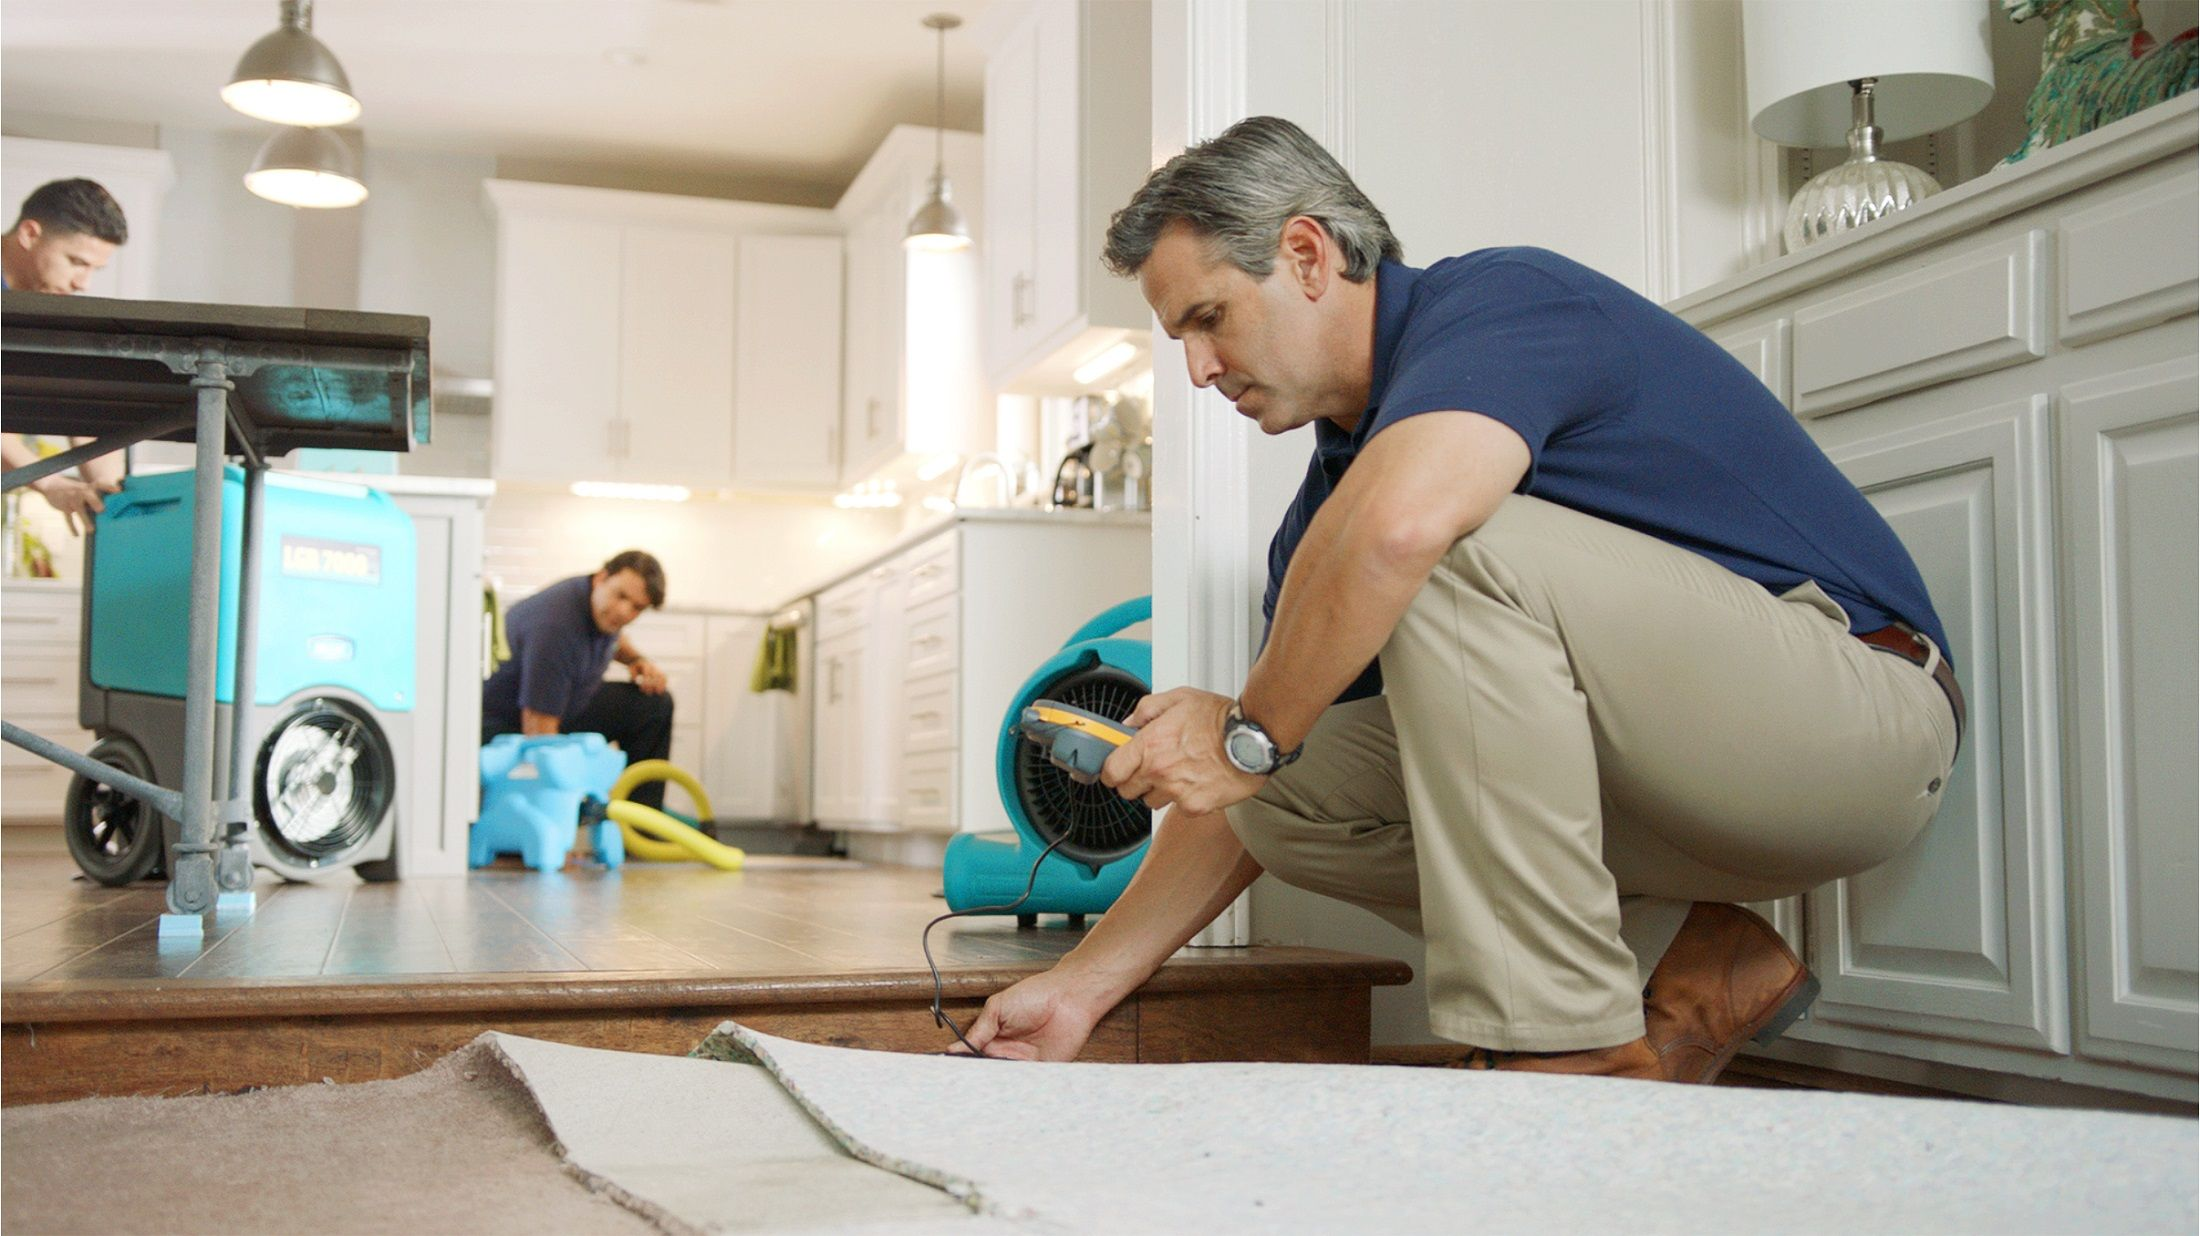 Trust Servicemaster Restore To Provide Expert Water Mitigation Technicians Ready To Respond To Any Water D Restoration Services Damage Restoration Restoration